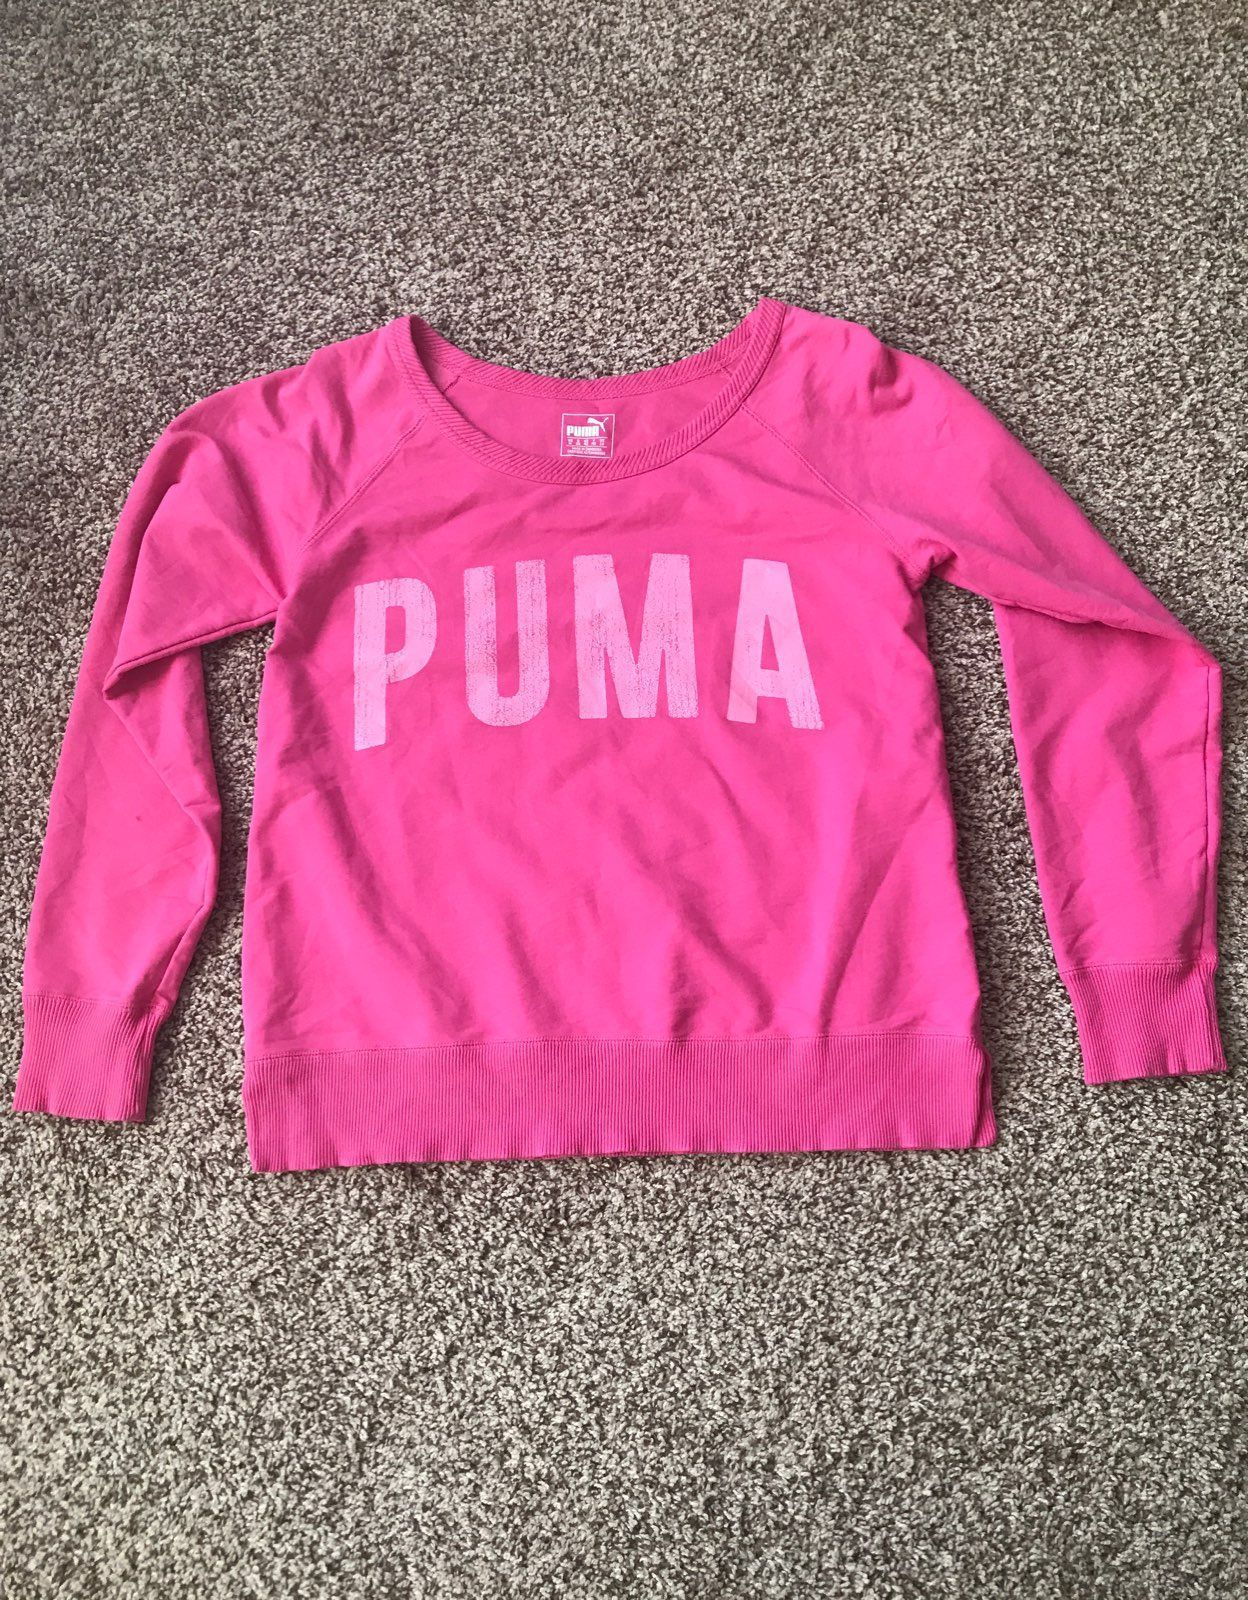 Pink Puma Sweatshirt Women's Medium